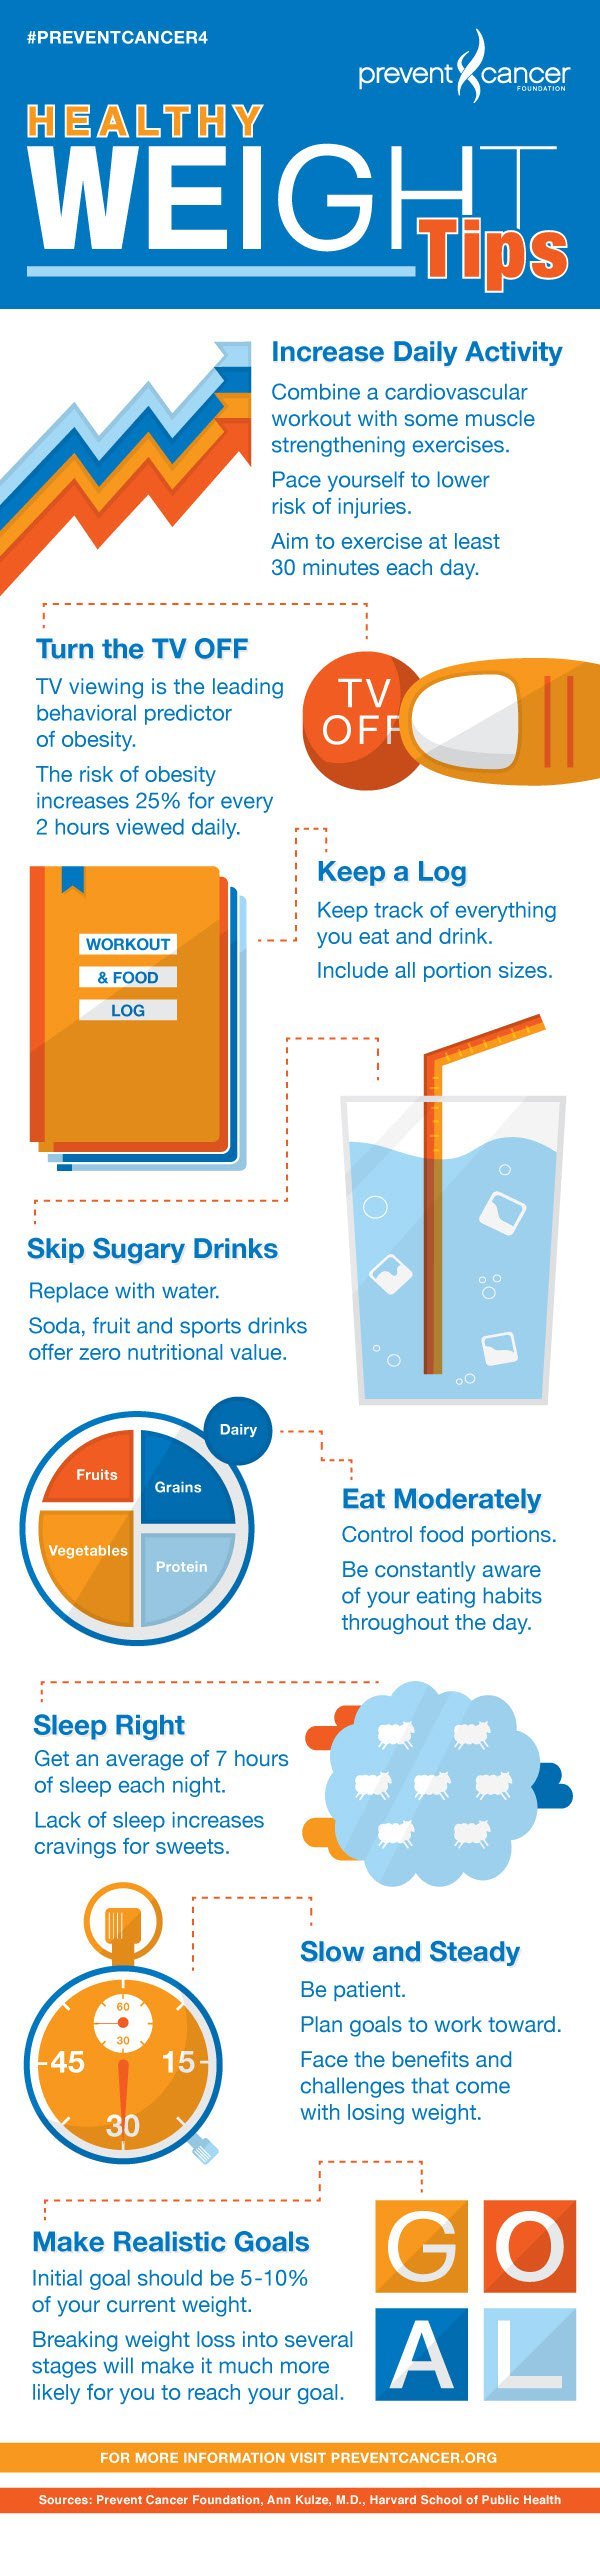 Infographic illustrator for healthy weight loss tips